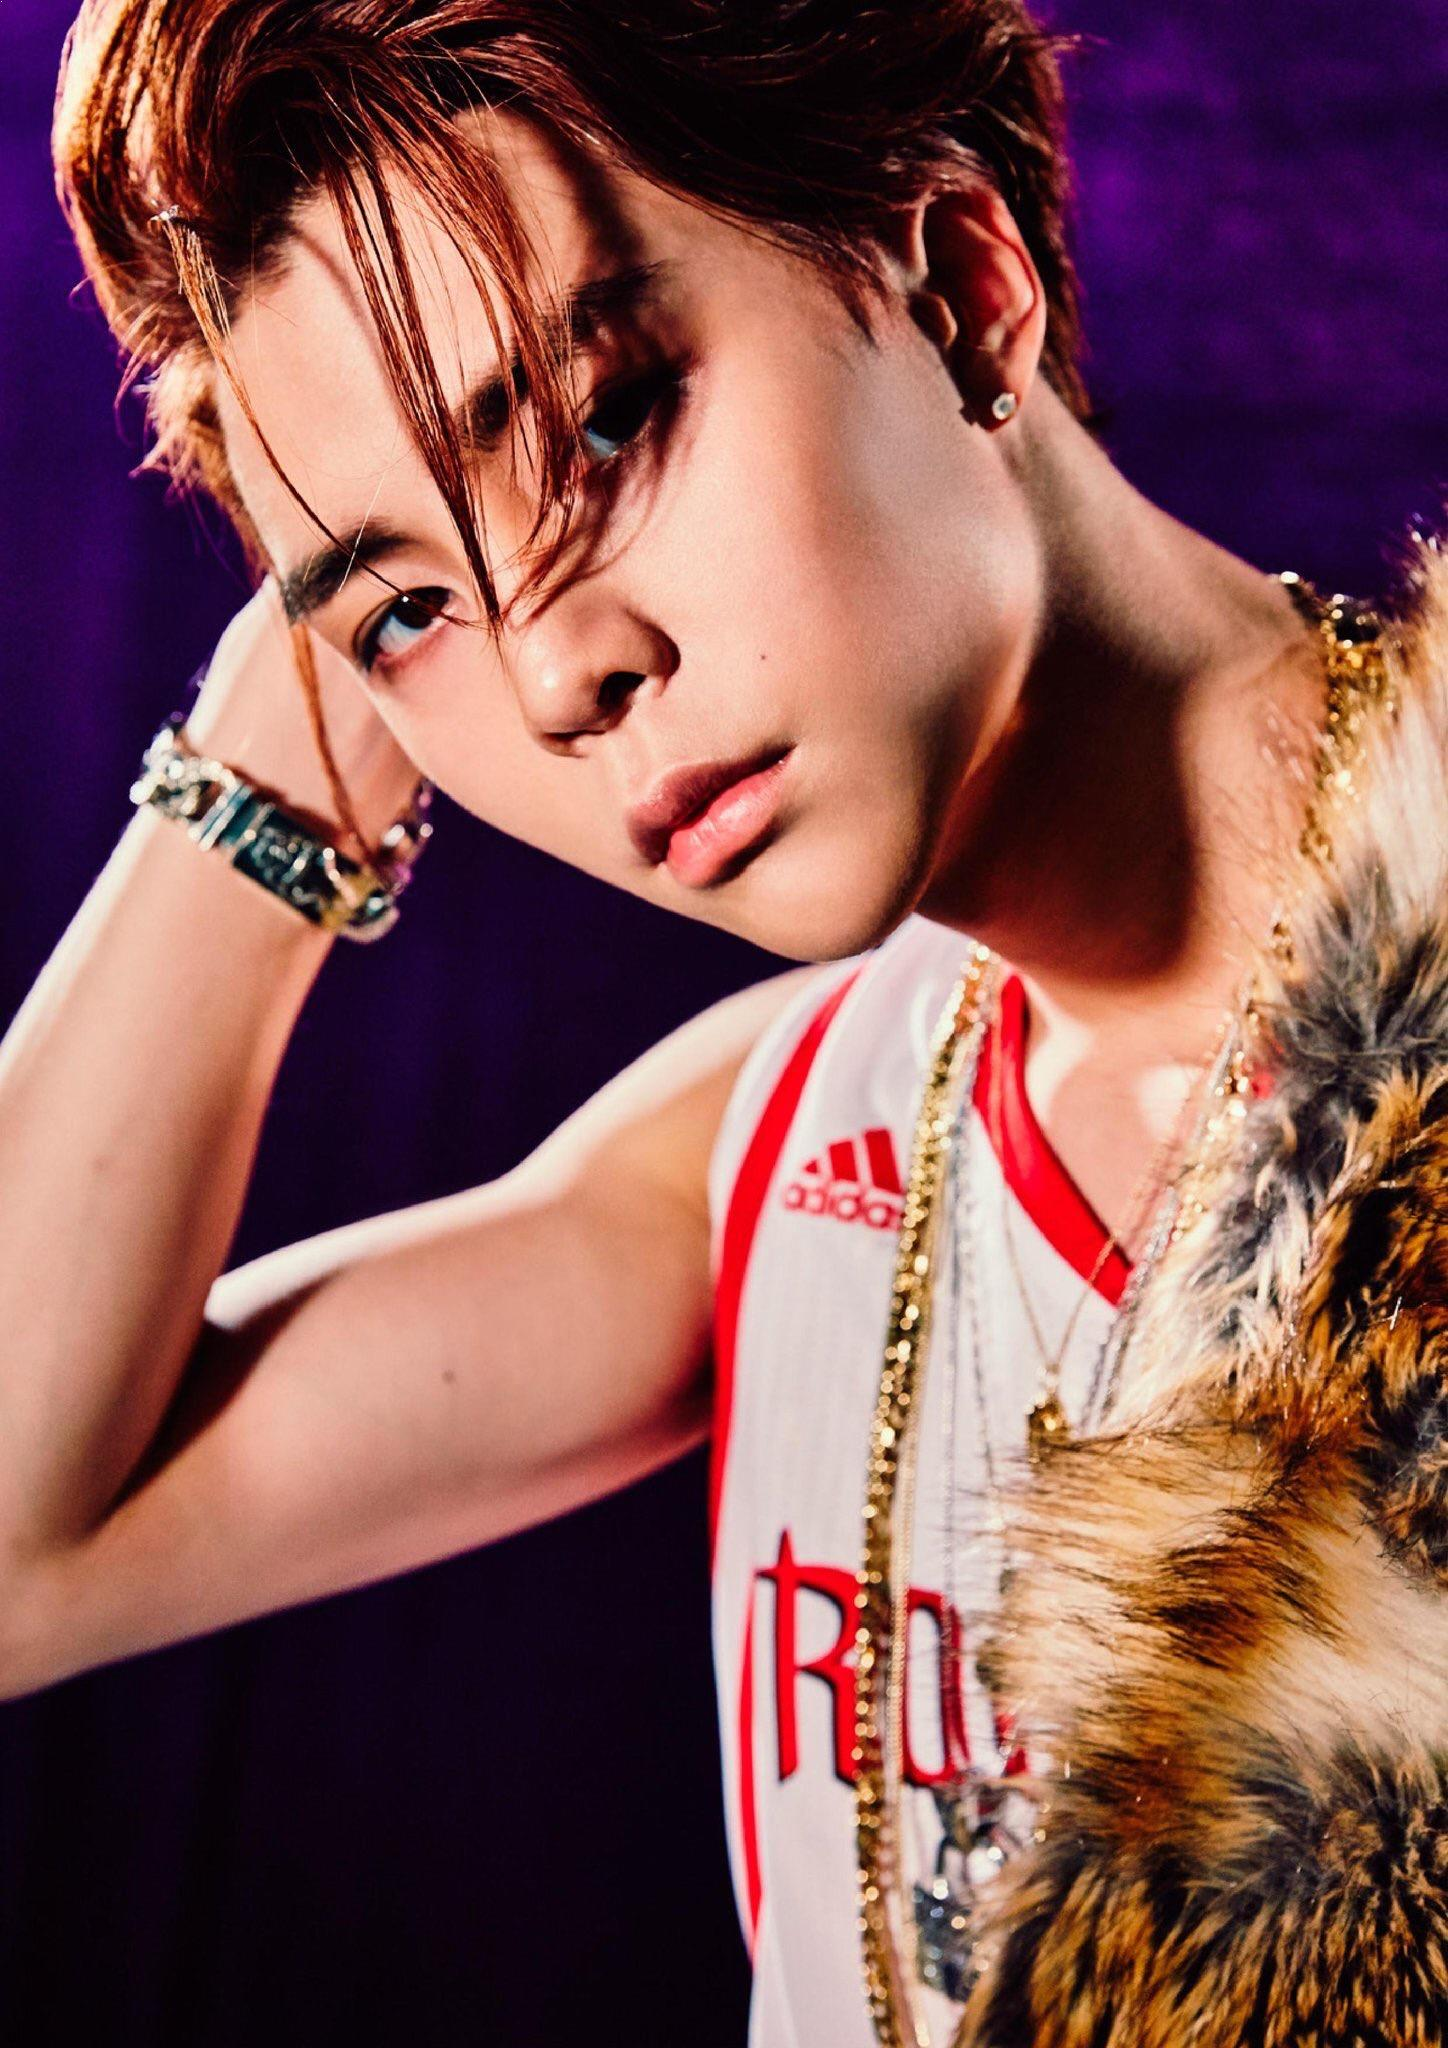 johnny, johnny seo, nct, nct 127, kpop 2017, johnny nct profile, nct 127 profile